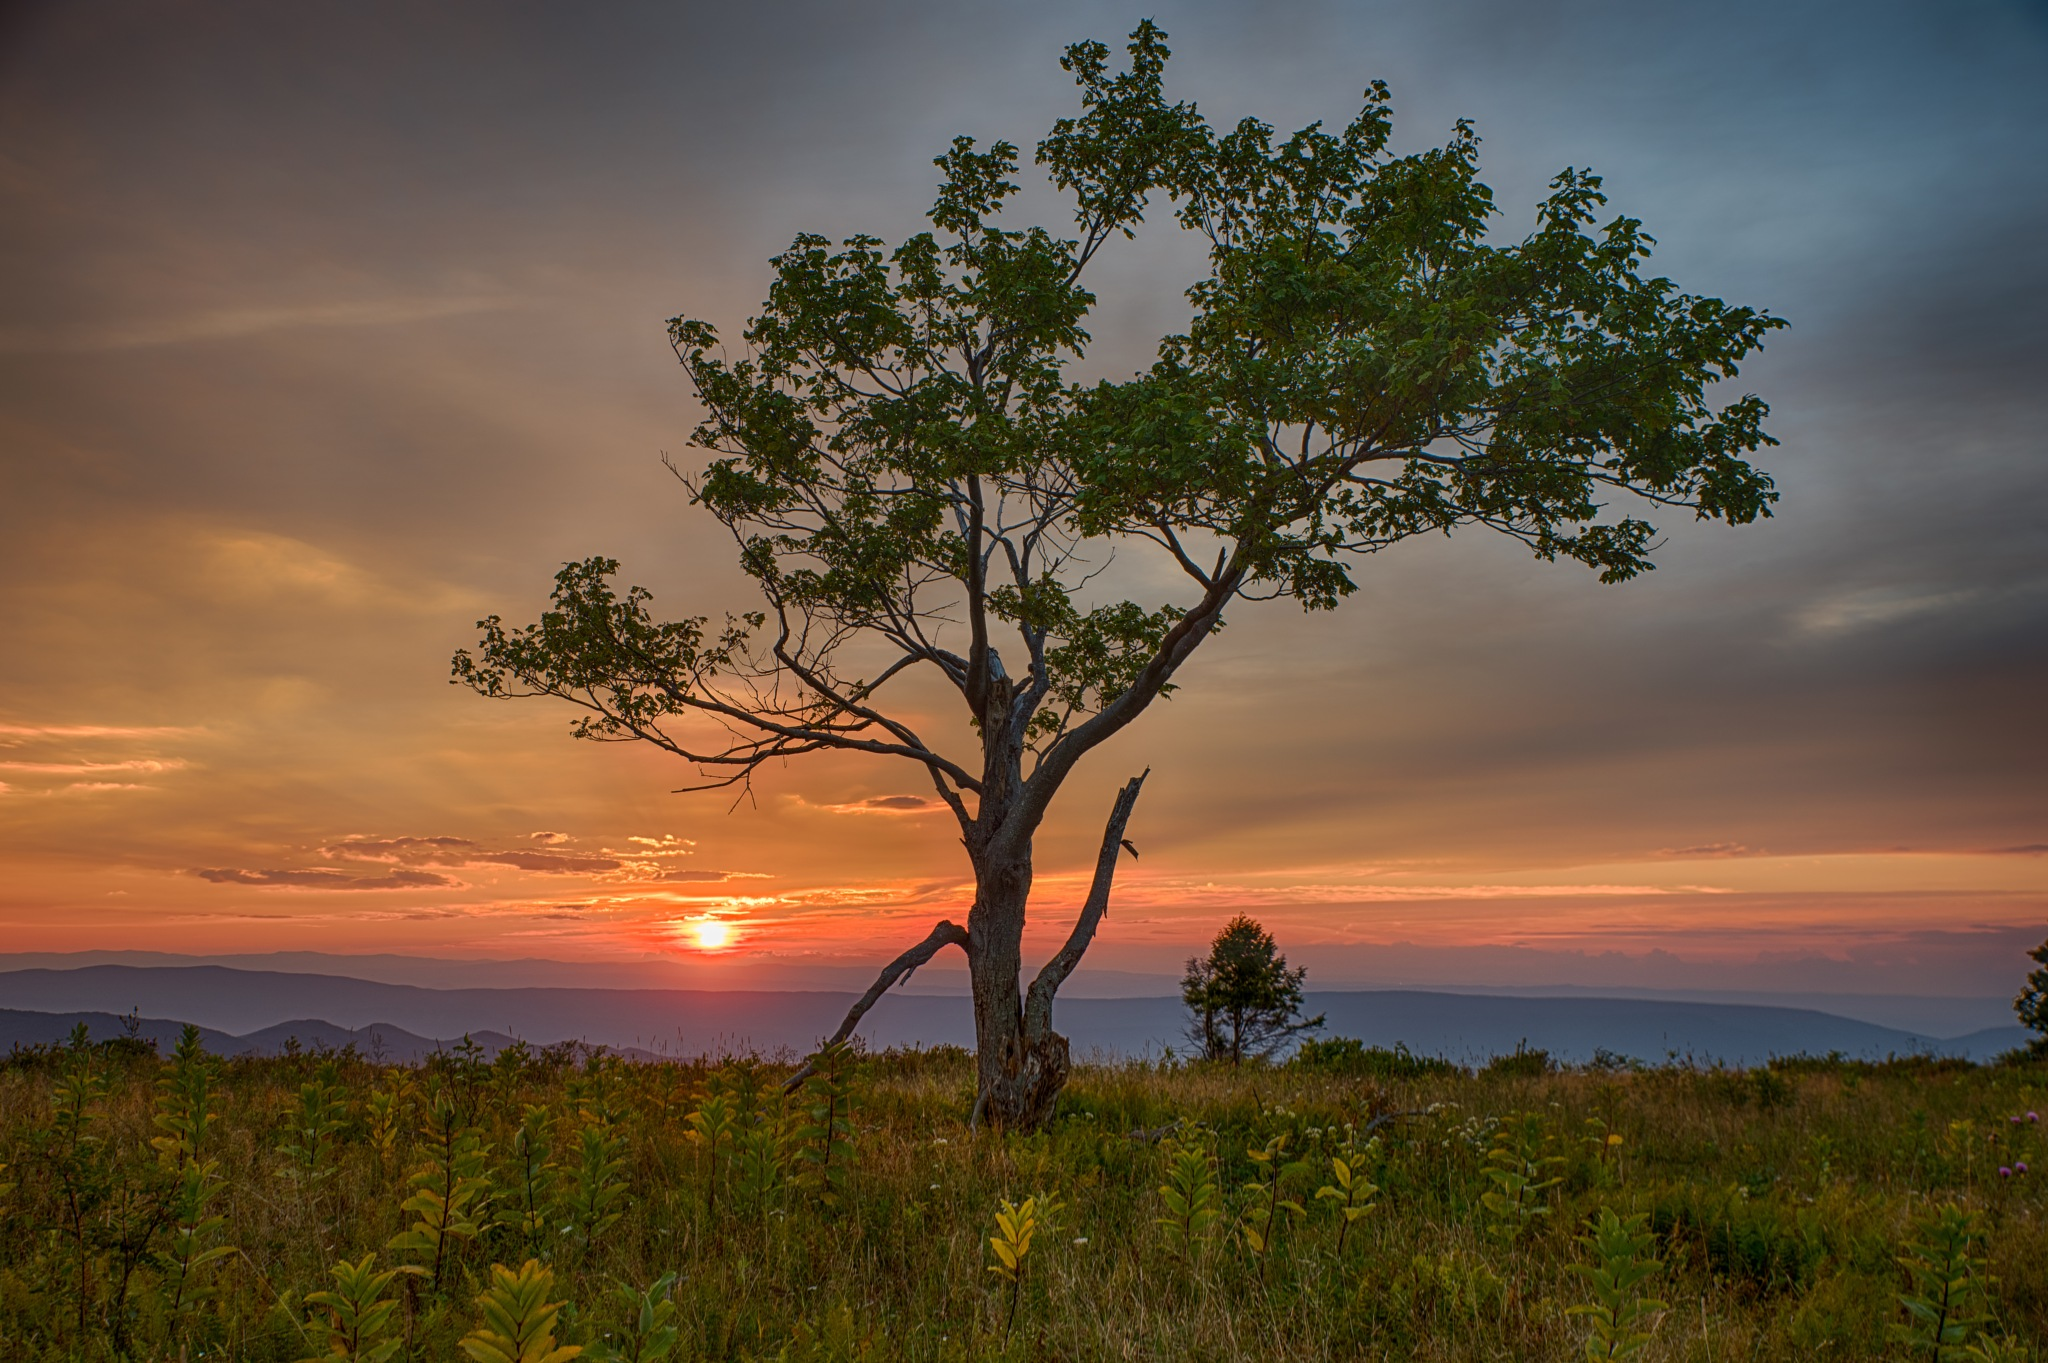 Sunset View by CEG Photography